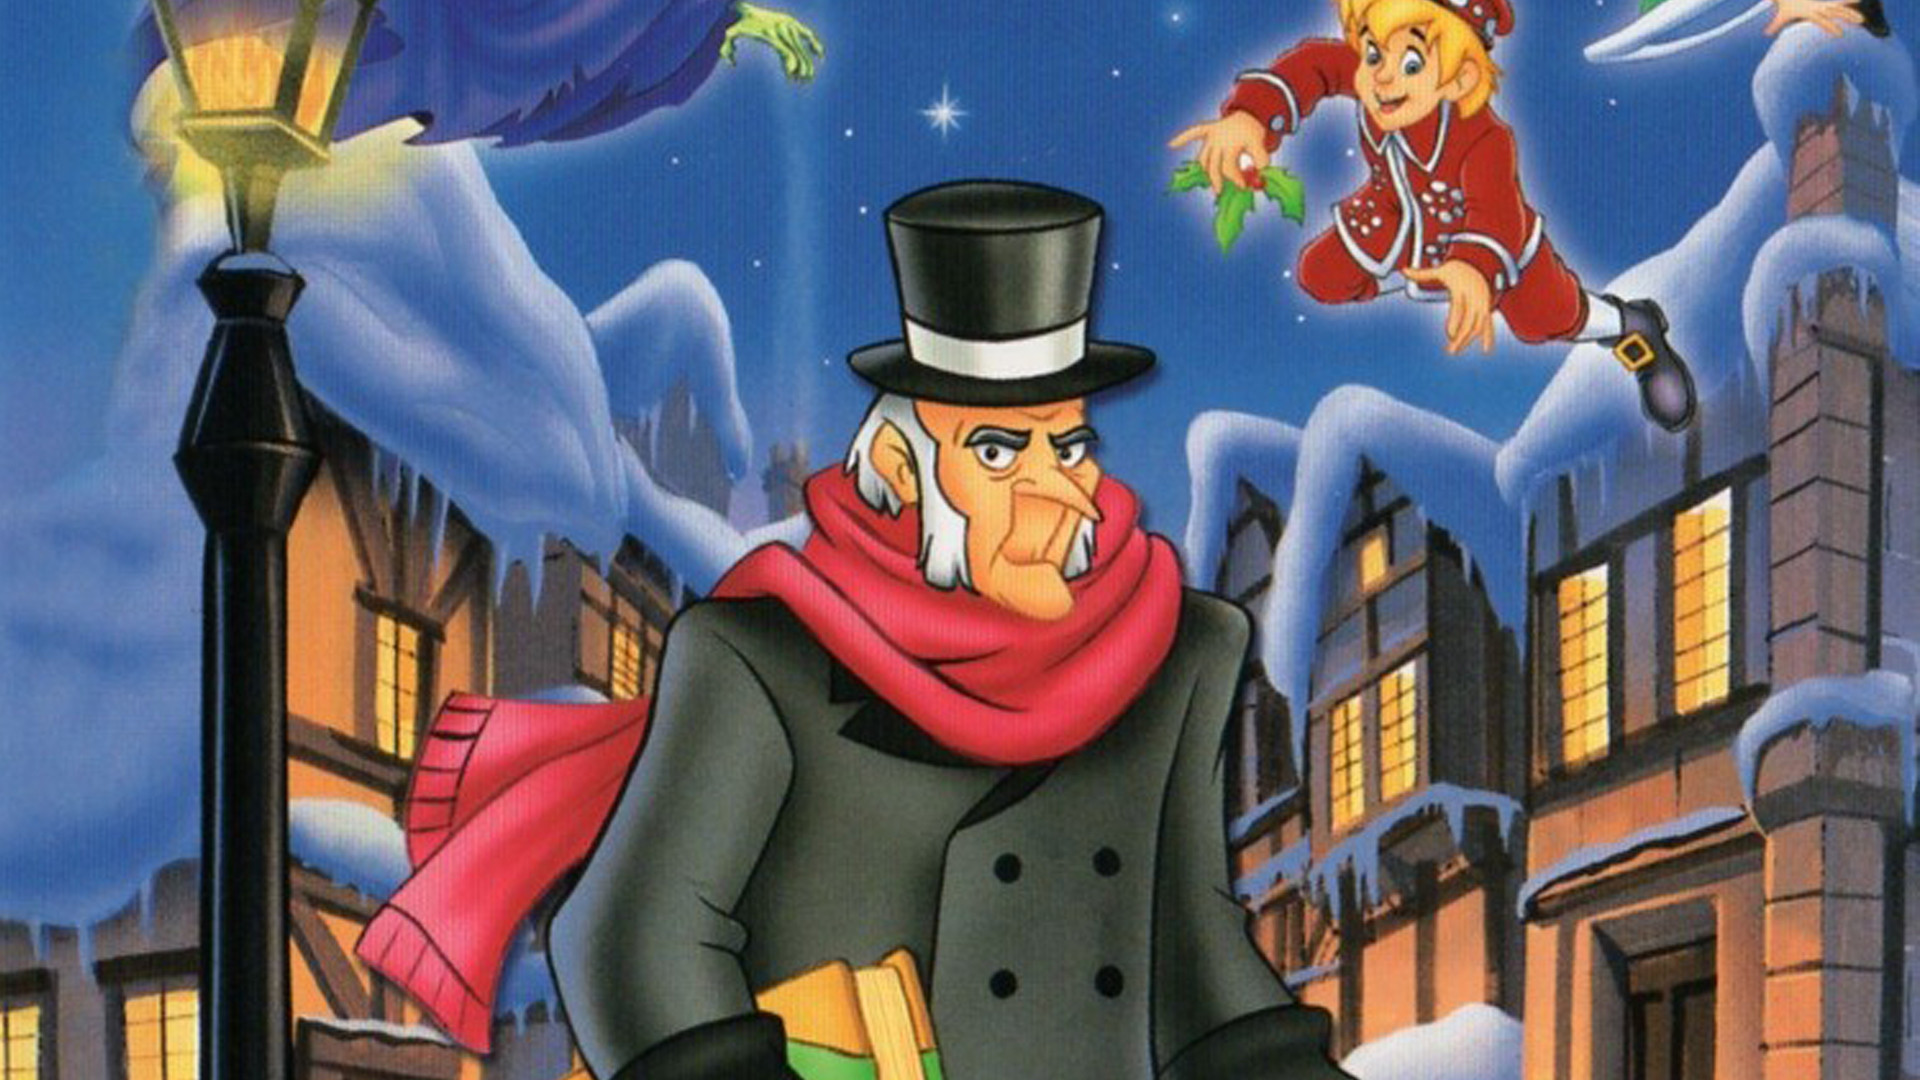 a christmas carol a morality play A morality play, not unlike some of the popular plays i have seen i think we all have seen this familiar theme many times over the years as we head into the christmas season, where reflective thinking becomes this very theme.